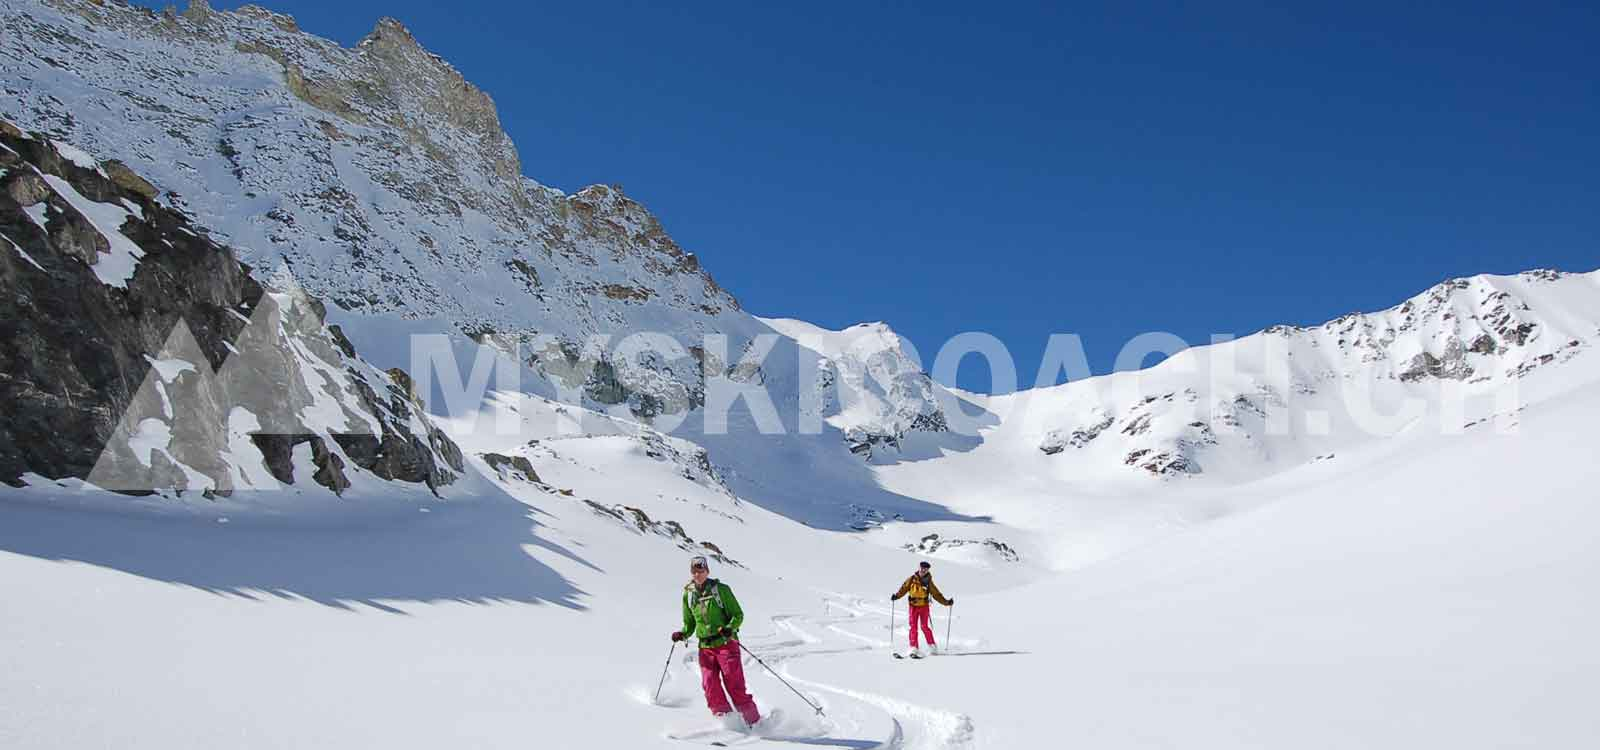 [:fr]MYSKICOACH.CH VALAIS-SUISSE. Cours de ski, formation freeride, hors-piste pour adultes et adolescents de niveau avancé[:en]MYSKICOACH.CH VALAIS-SWITZERLAND Ski, freeride instruction and off-piste private coaching for adults and teenagers from beginner to intermediate level. Aiming for autonomy while discovering new spots [:]